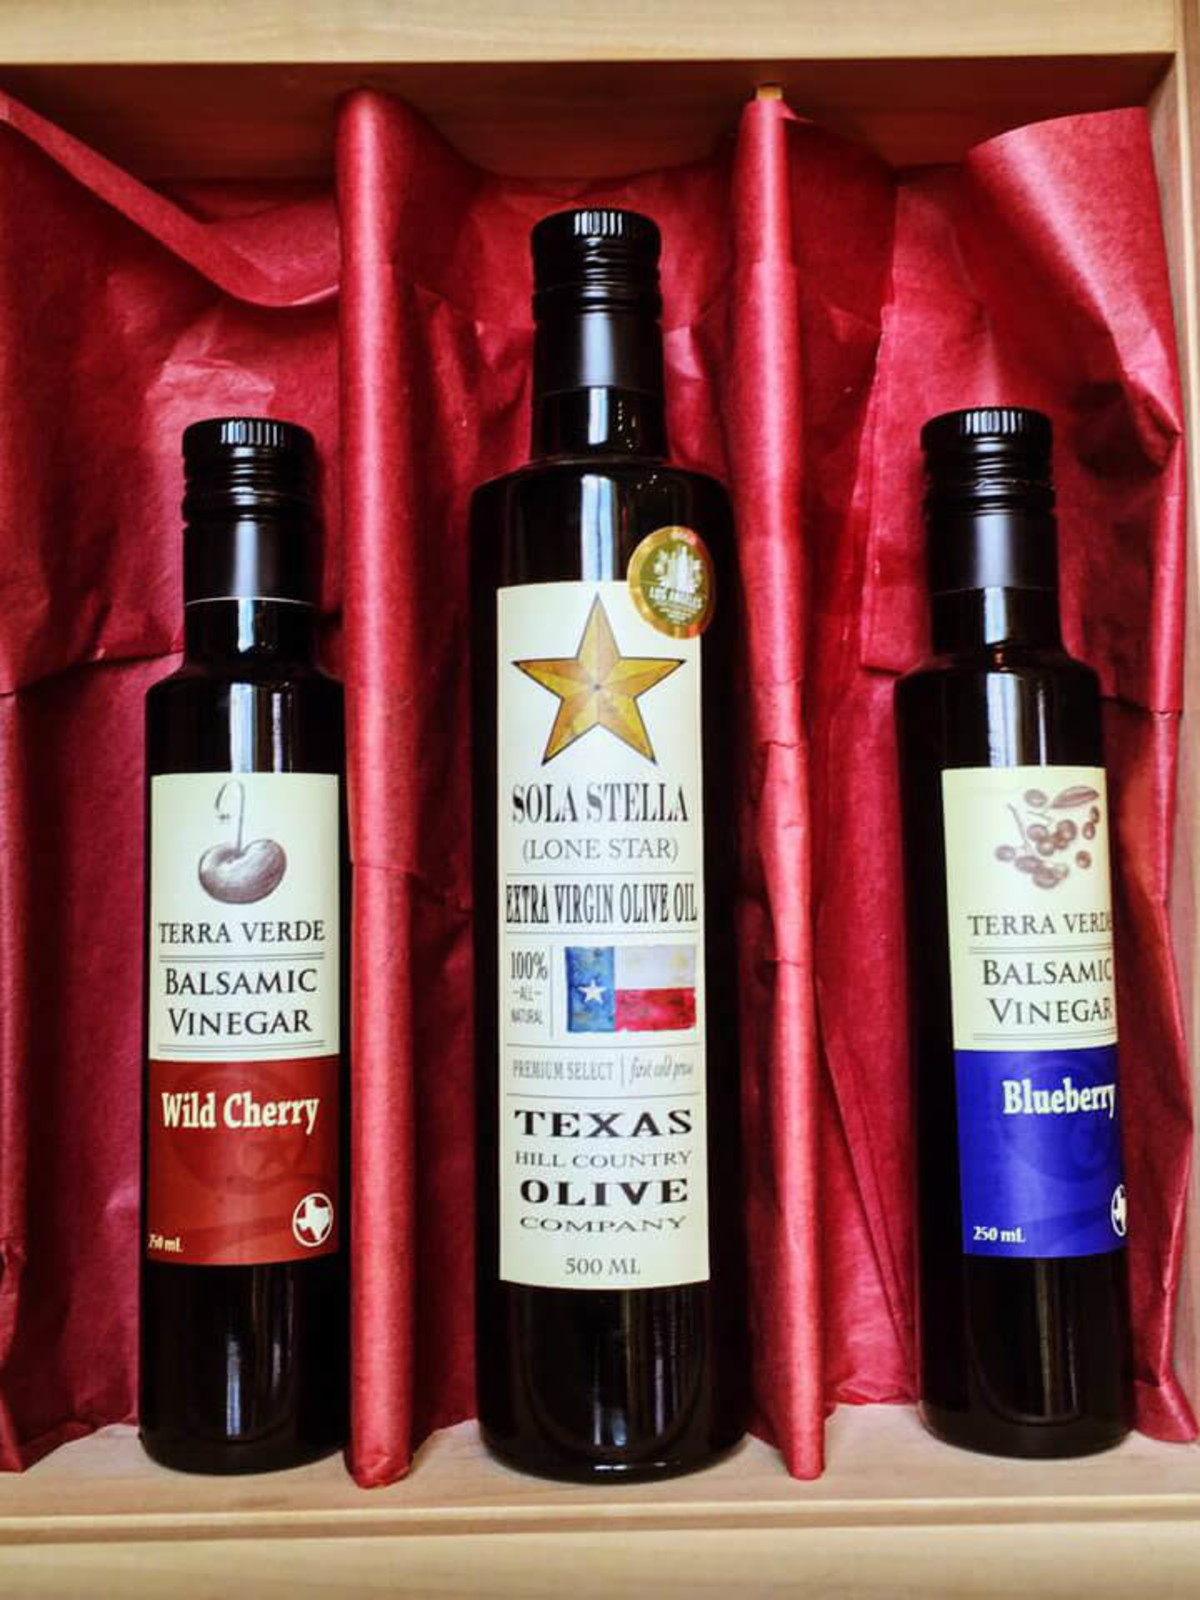 Texas Hill Country Olive Oil gift box